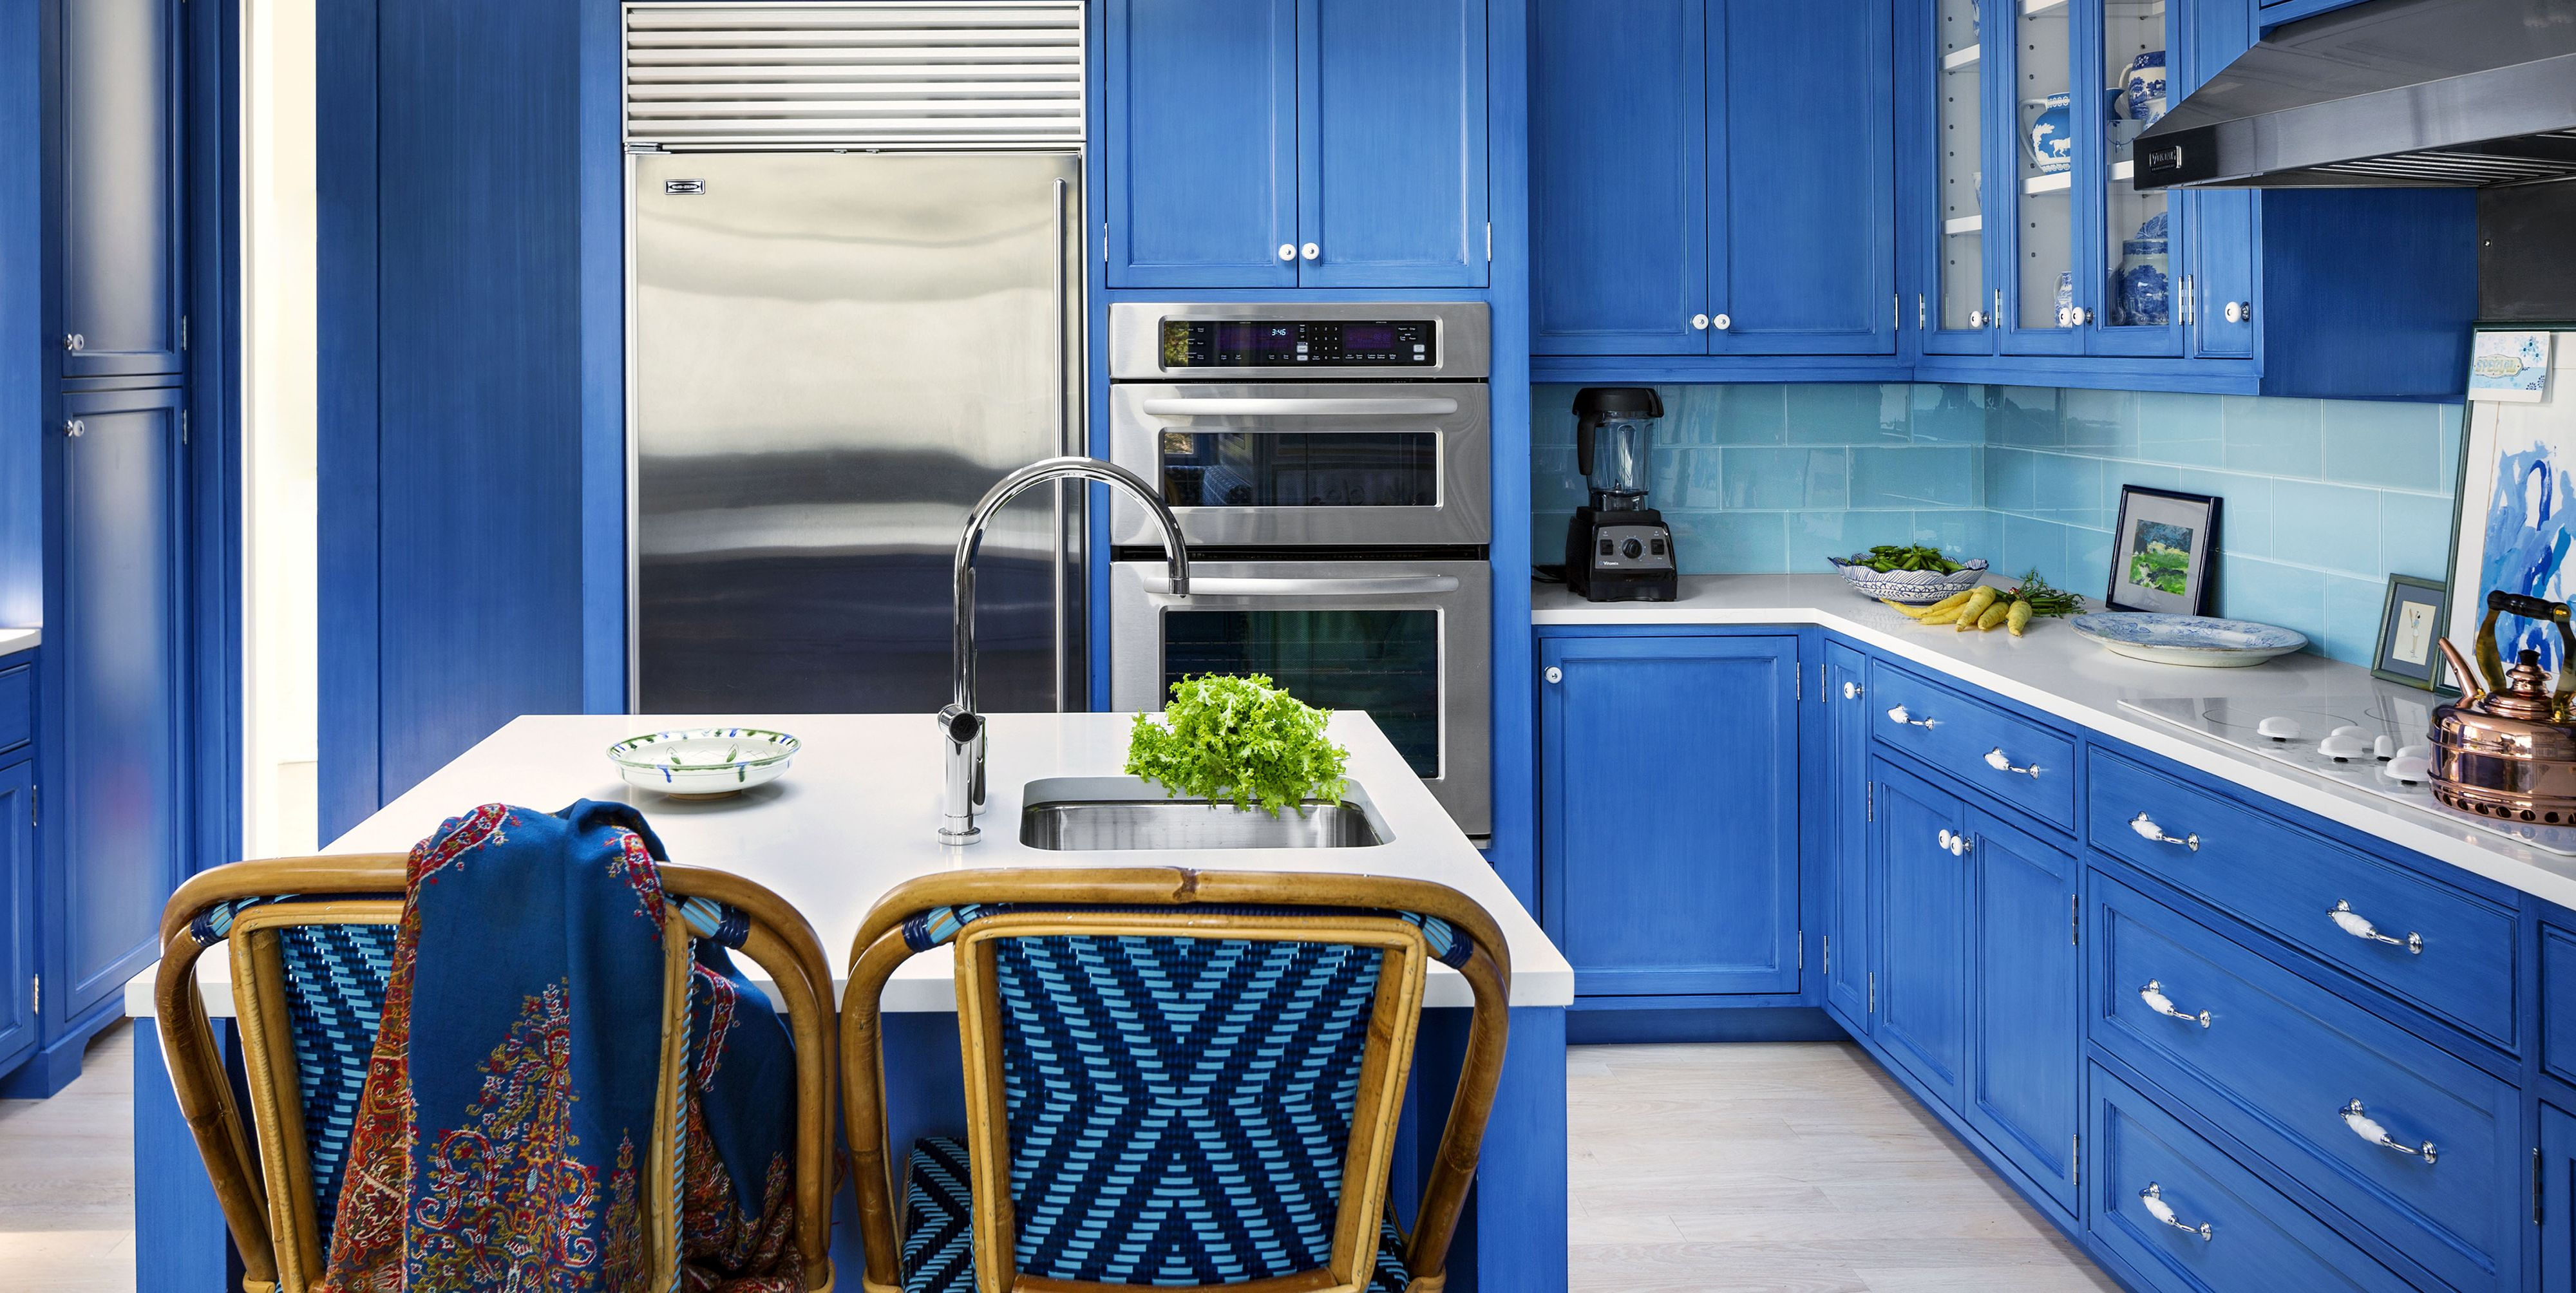 15 Blue Kitchen Design Ideas That'll Both Soothe and Stun